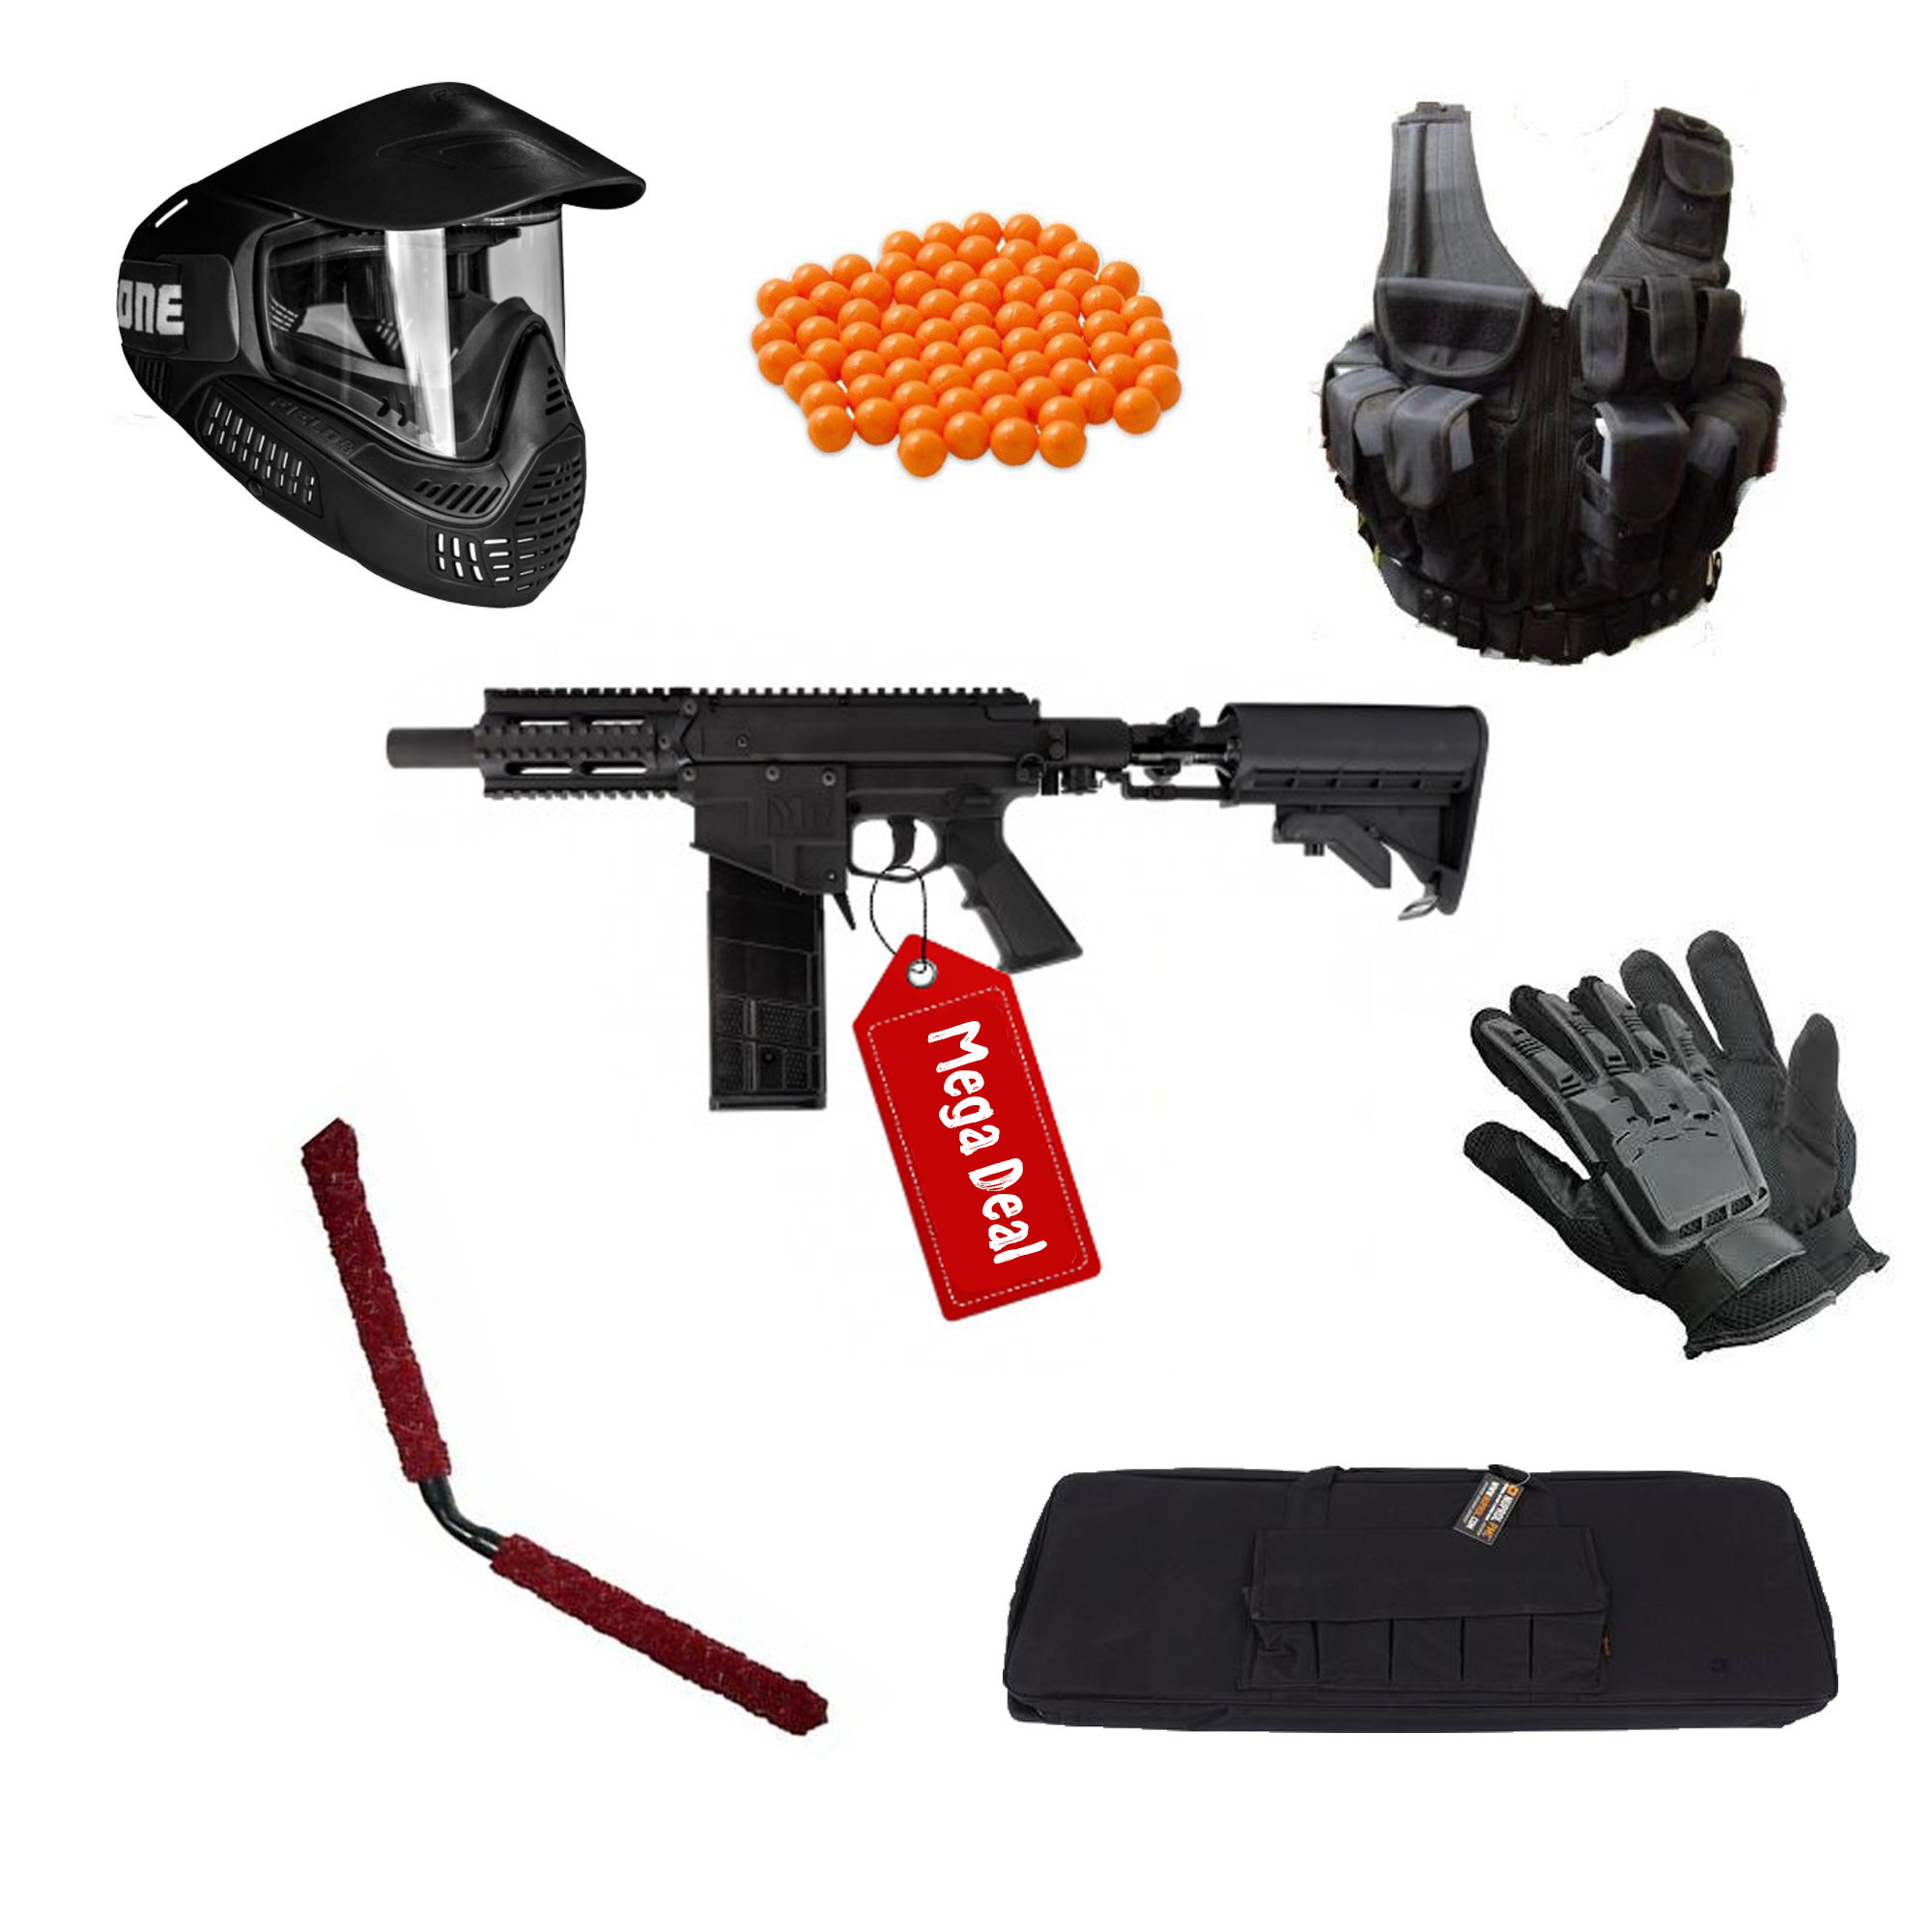 Milsig M17 CQC Mega Package - Save £120